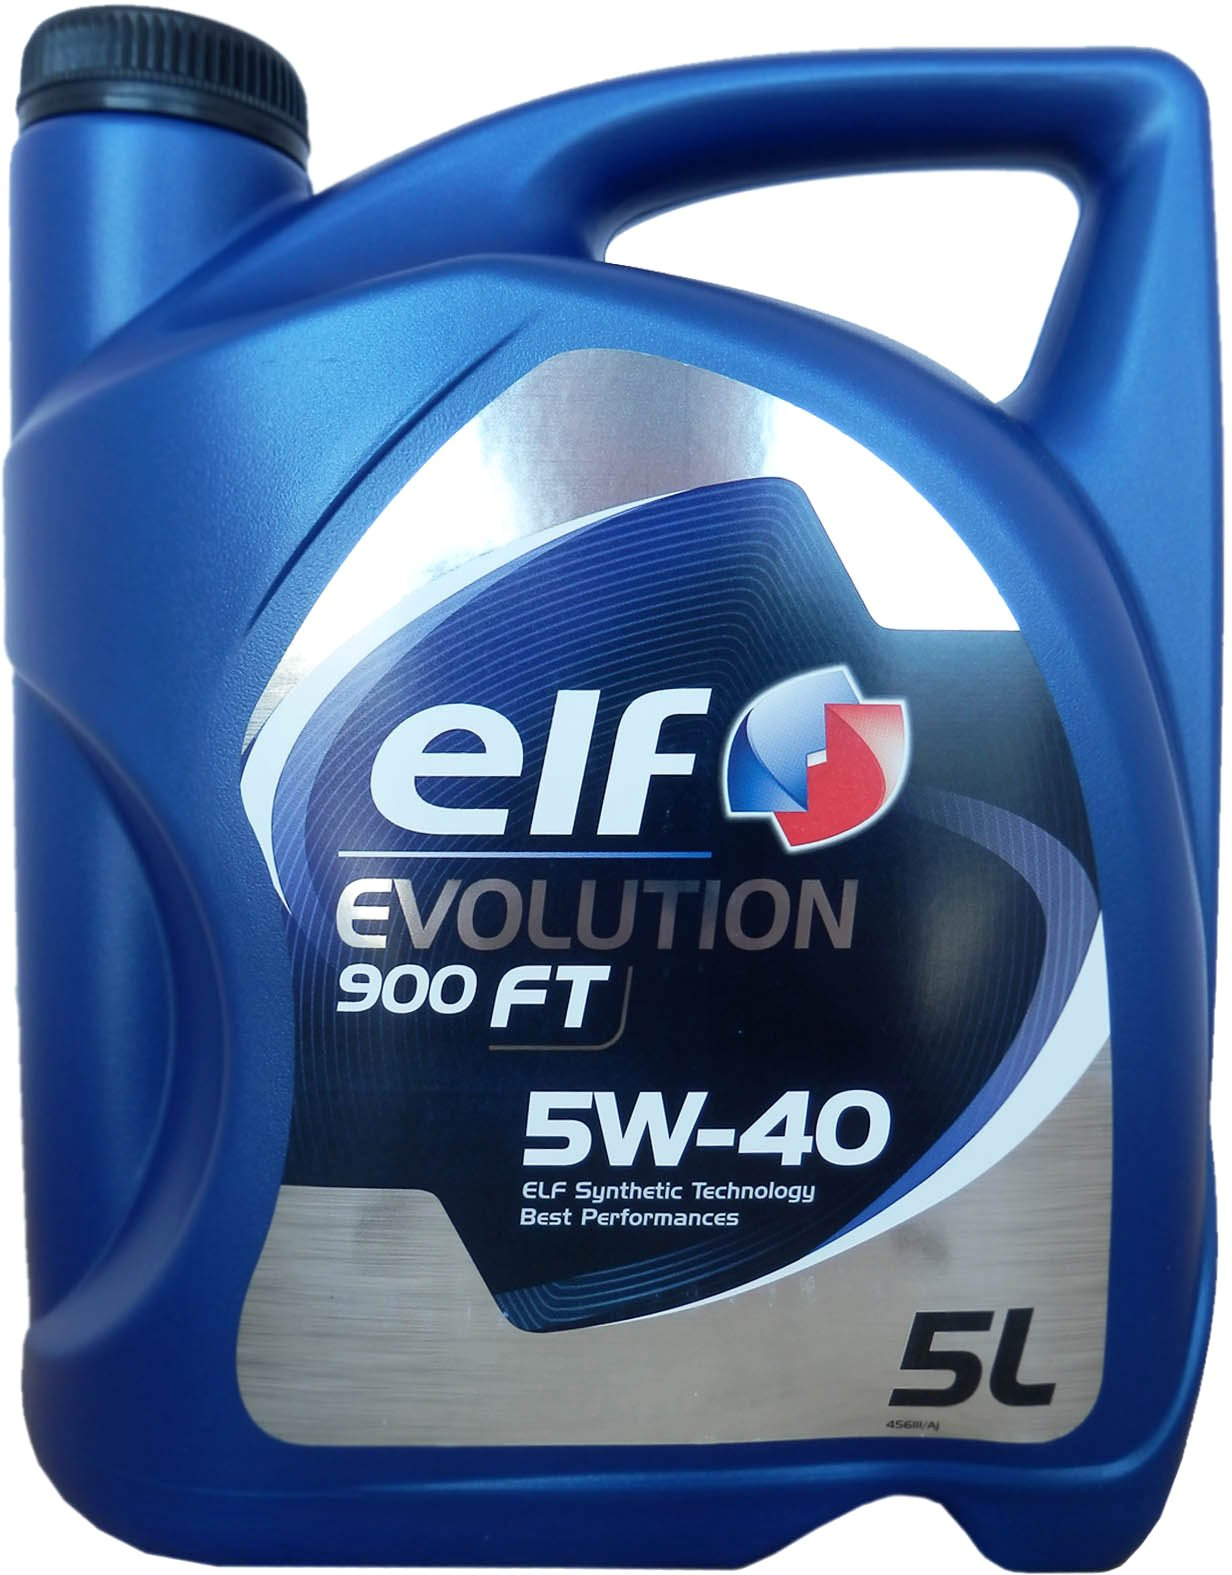 Elf Evolution 900 FT 5w-40 5 л